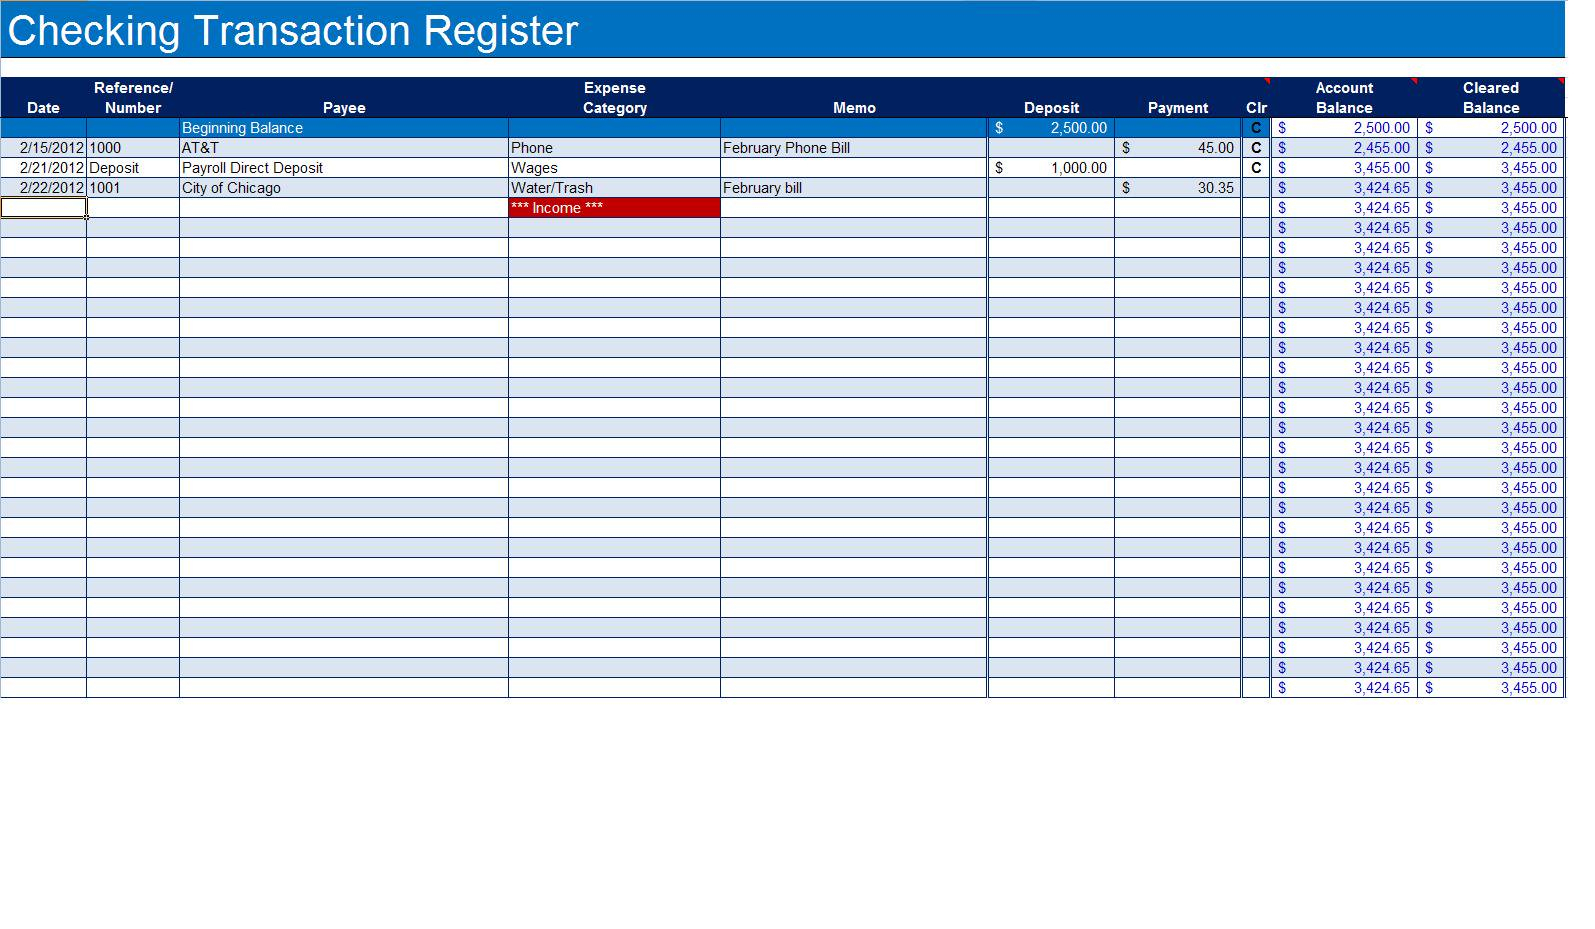 Checking Account Spreadsheet Template | db-excel.com